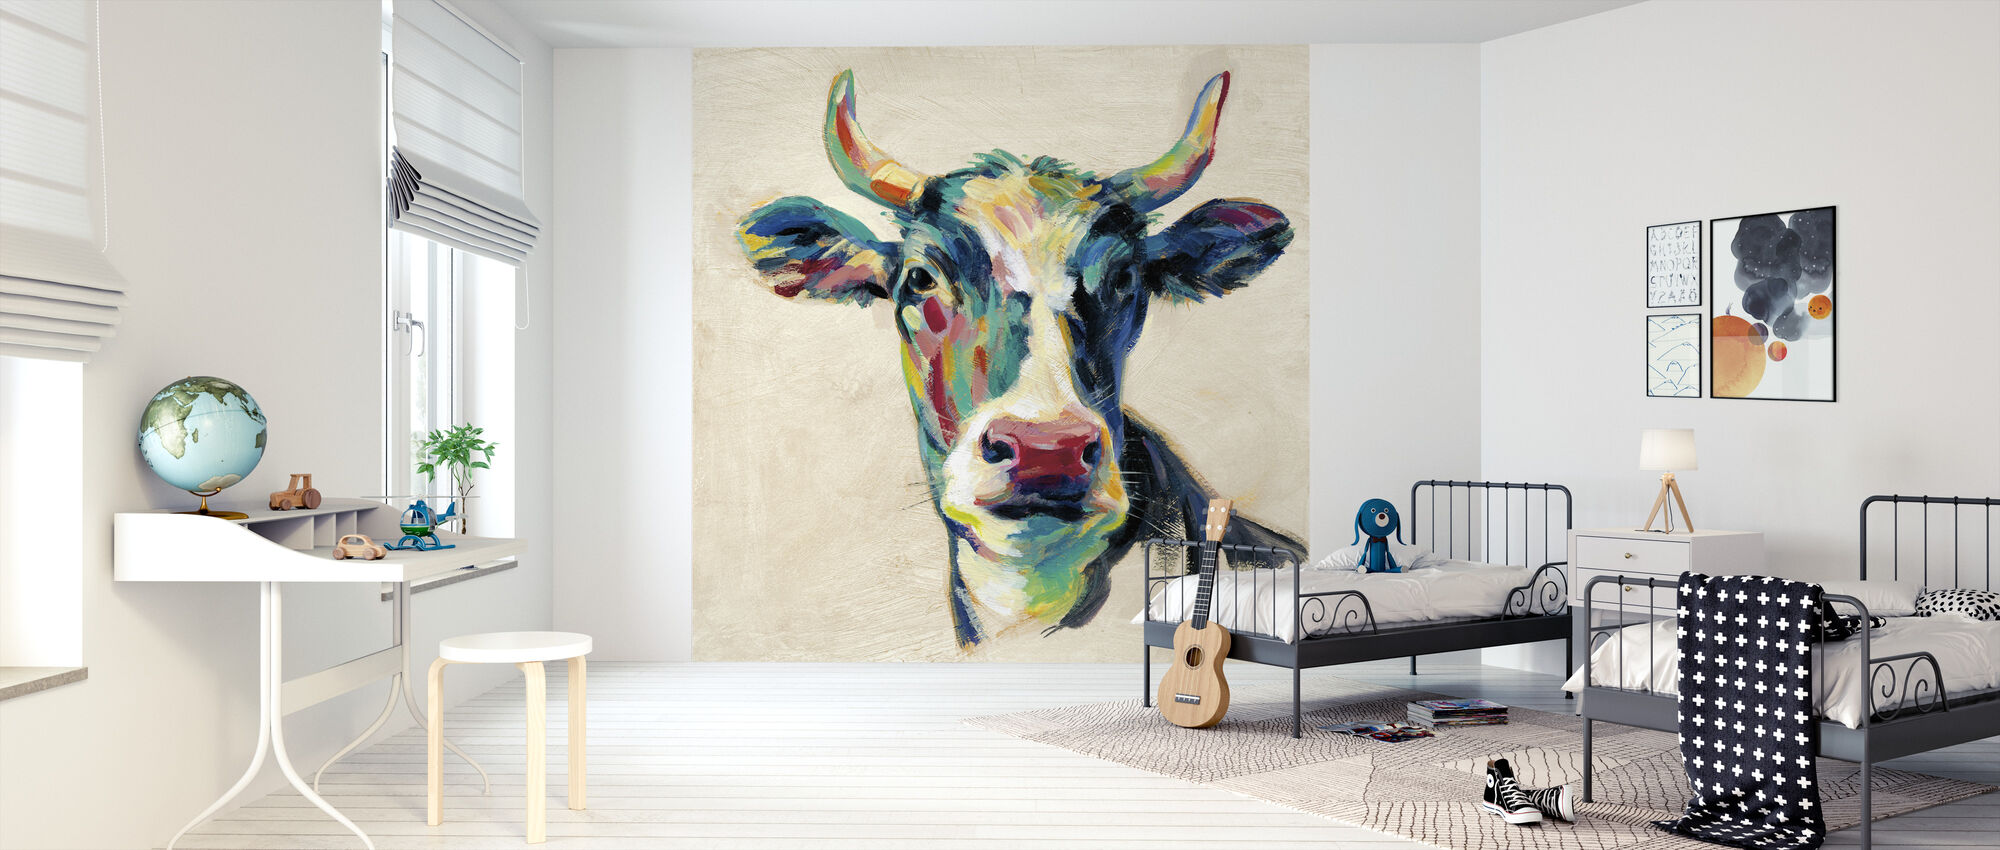 Expressionistic Cow II - Wallpaper - Kids Room